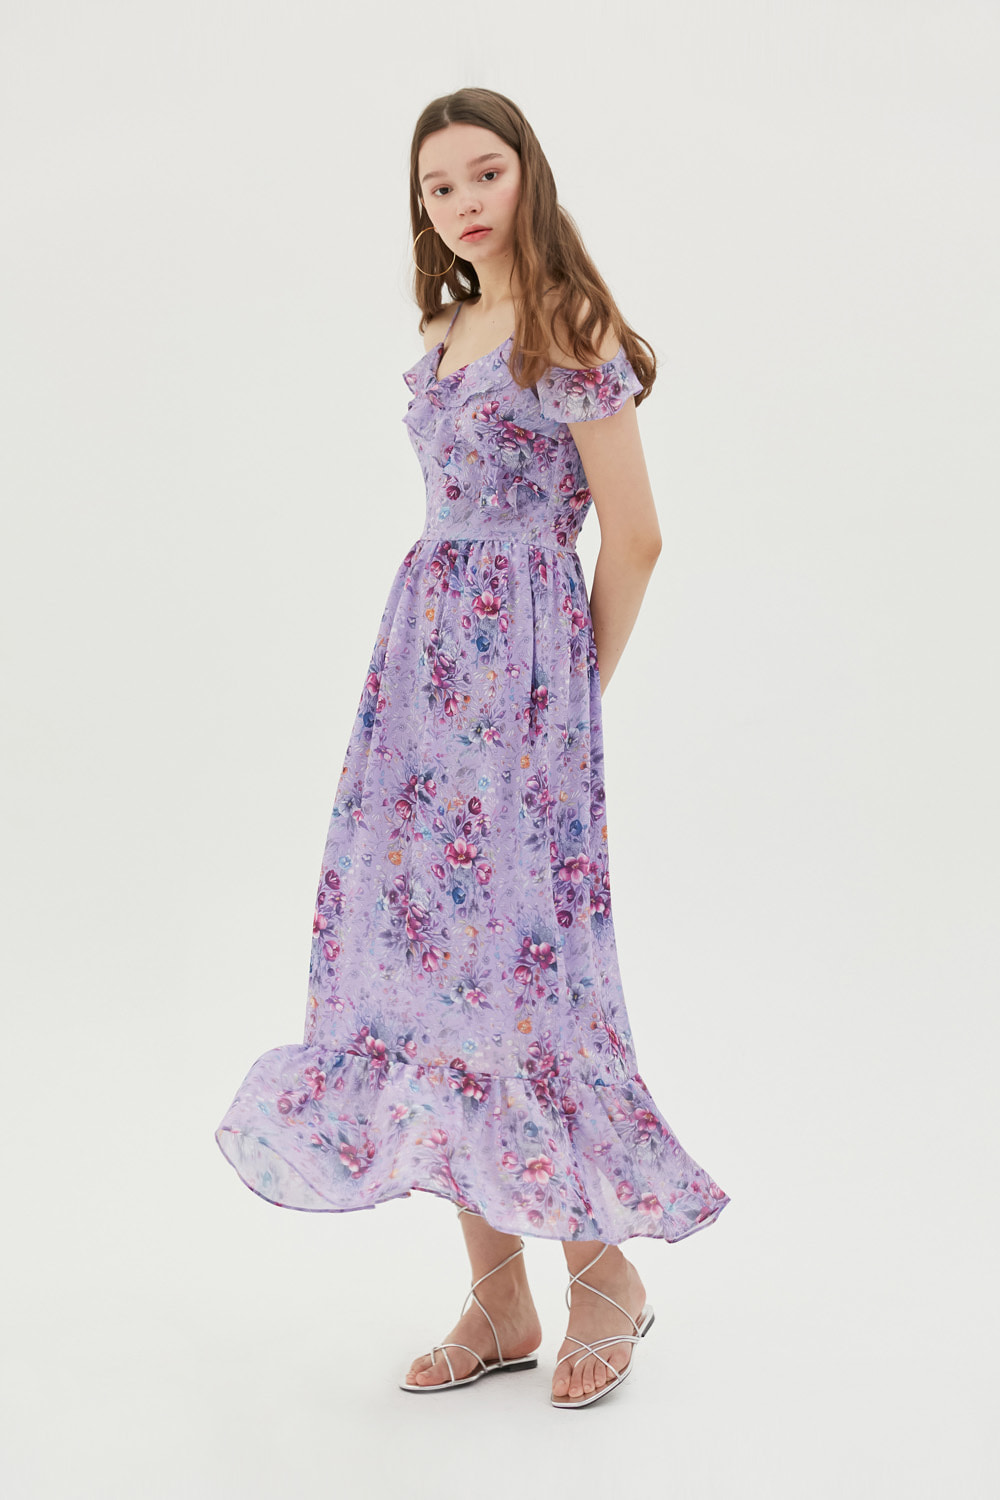 Ink drawing floral print dress (Light purple)